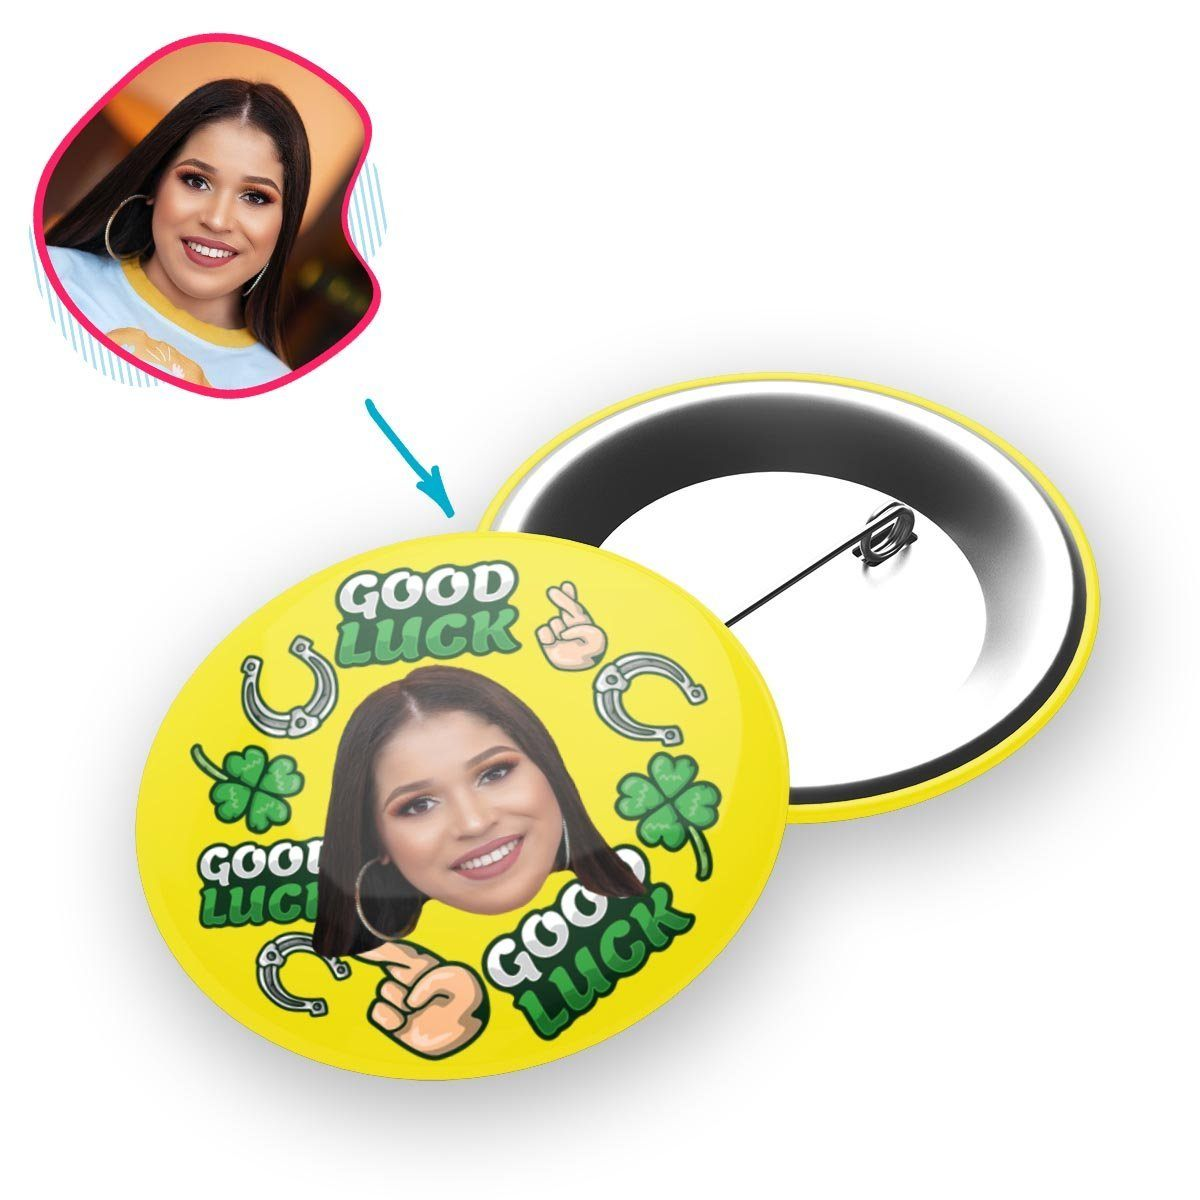 Yellow Good Luck personalized pin with photo of face printed on it